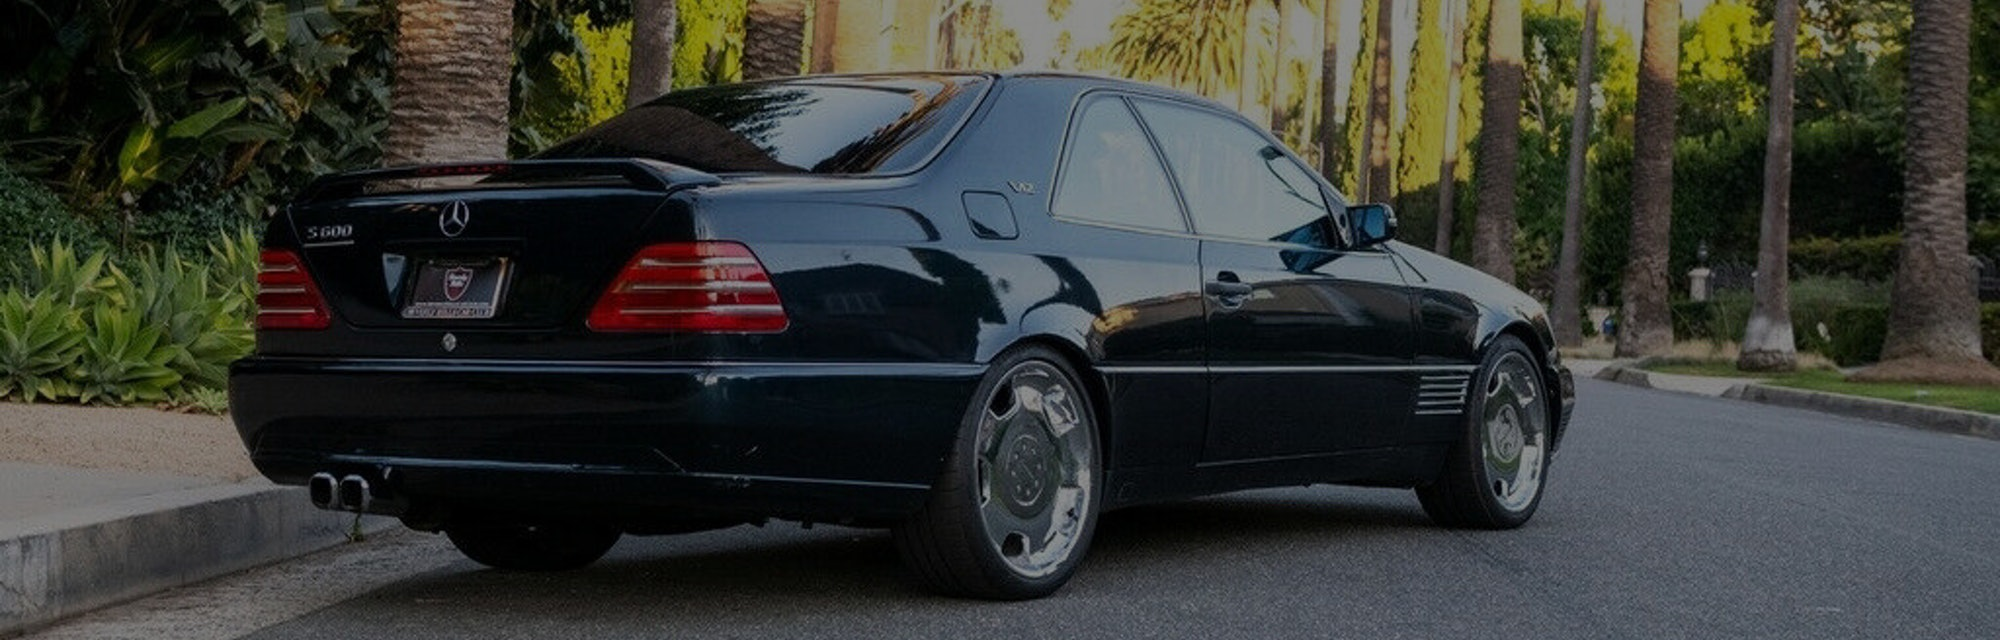 A 1996 Mercedes-Benz S-Class S600 once owned by Michael Jordan